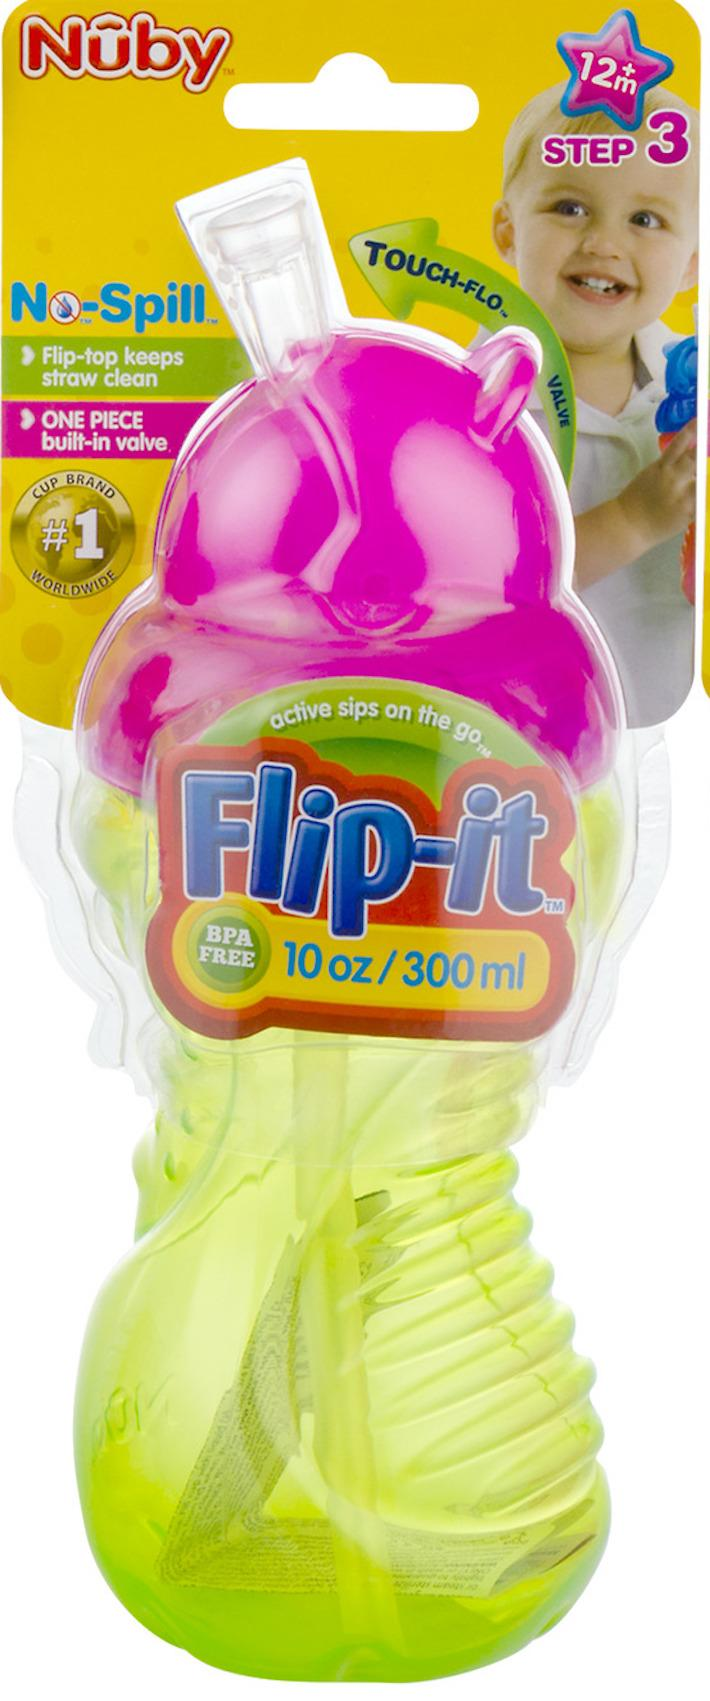 Feeding Cups For Sale Baby Cup Online Brands Prices Pigeon Bpa Free Set Mini 6m Nuby Flip It Easy Grip With Flo Straw Sippy 10 Oz